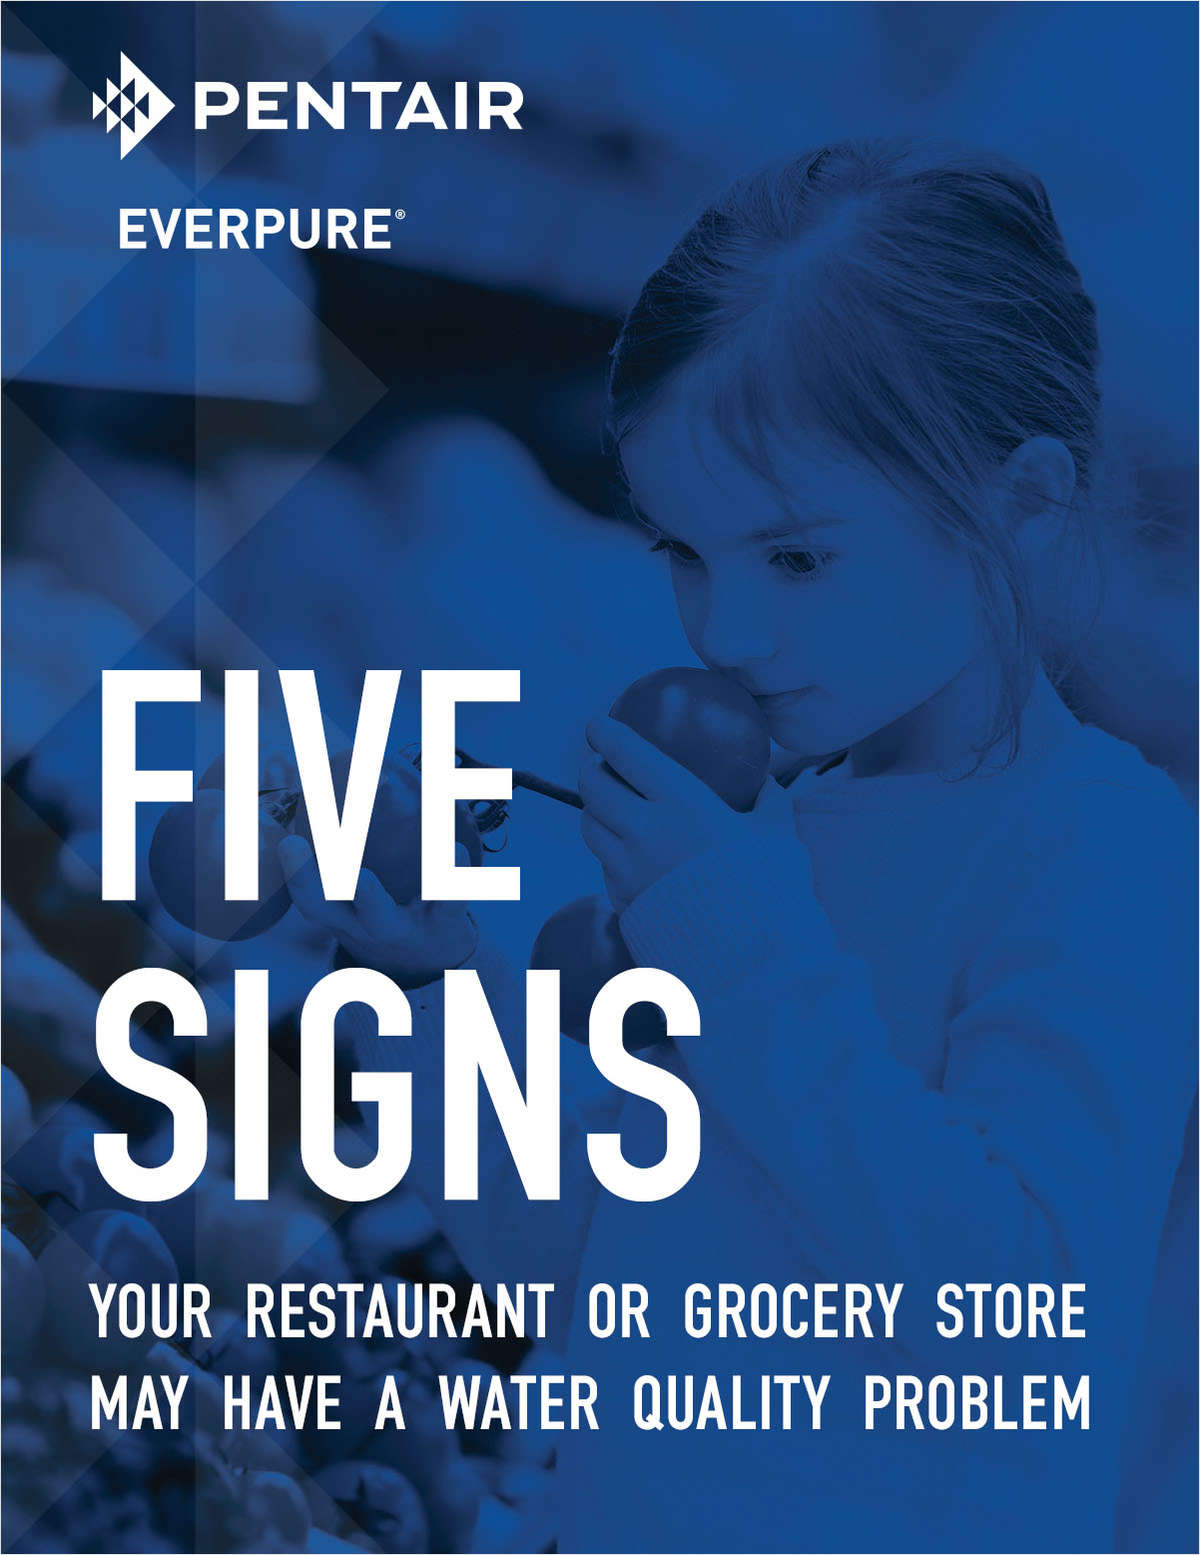 Pentair Everpure® Article: Five Signs Your Restaurant or Grocery Store May Have a Water Quality Problem